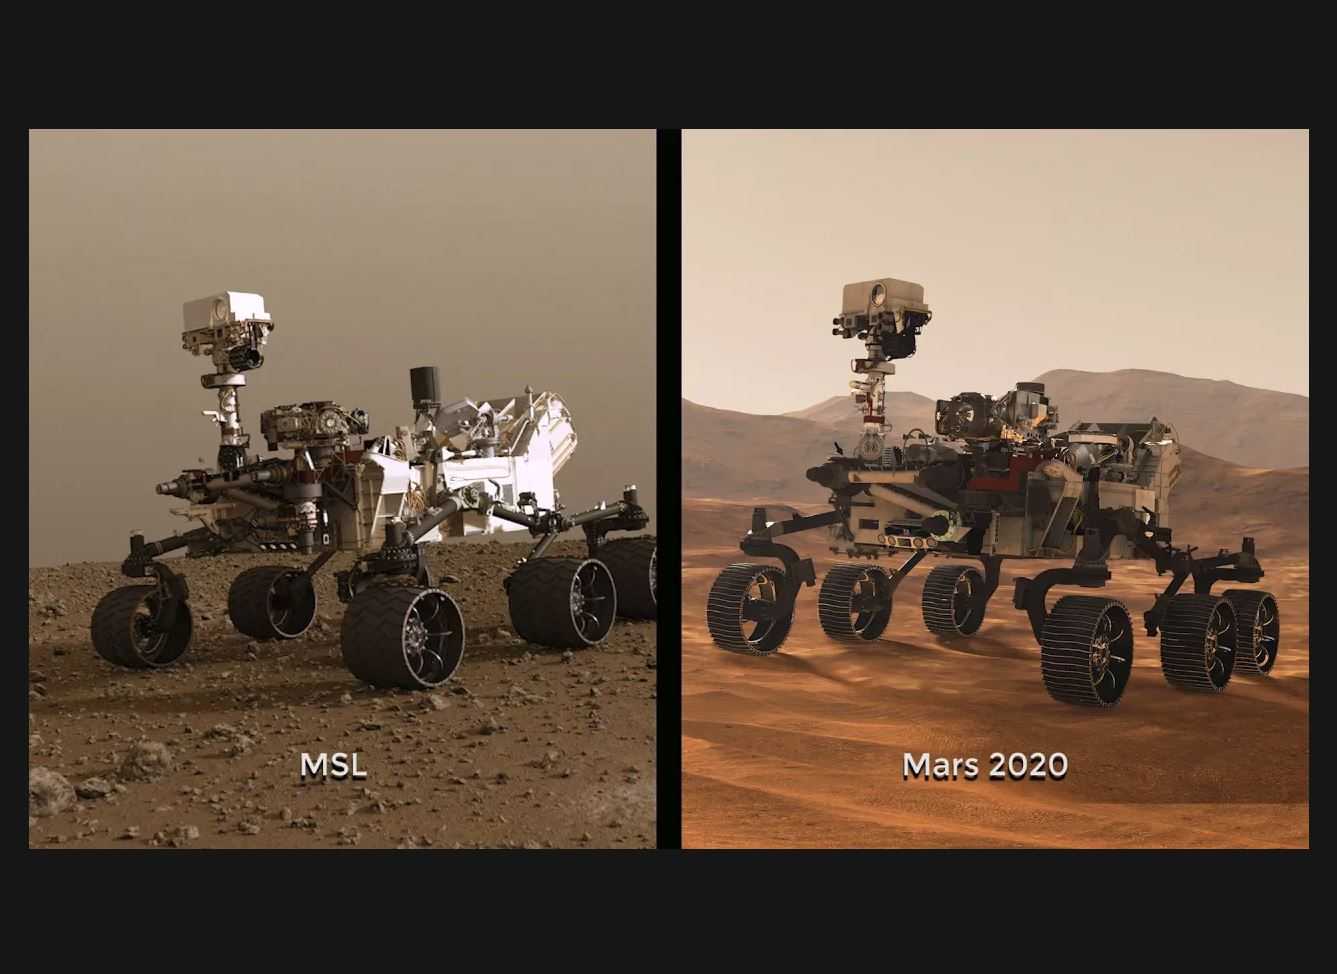 NASA Begins Building Its Next Mars Rover Mission Mars